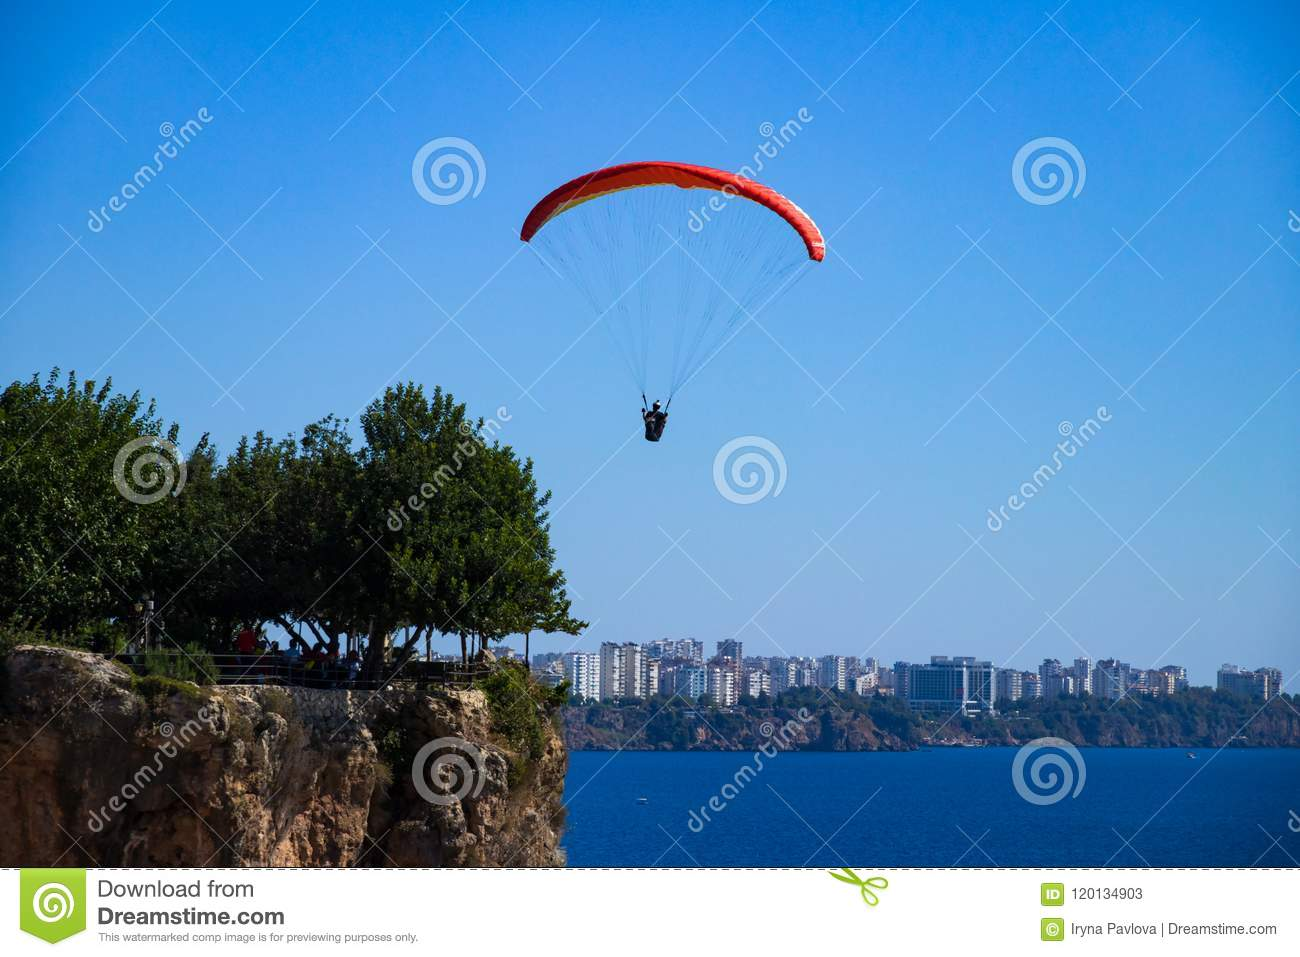 A man is flying on a paraglider